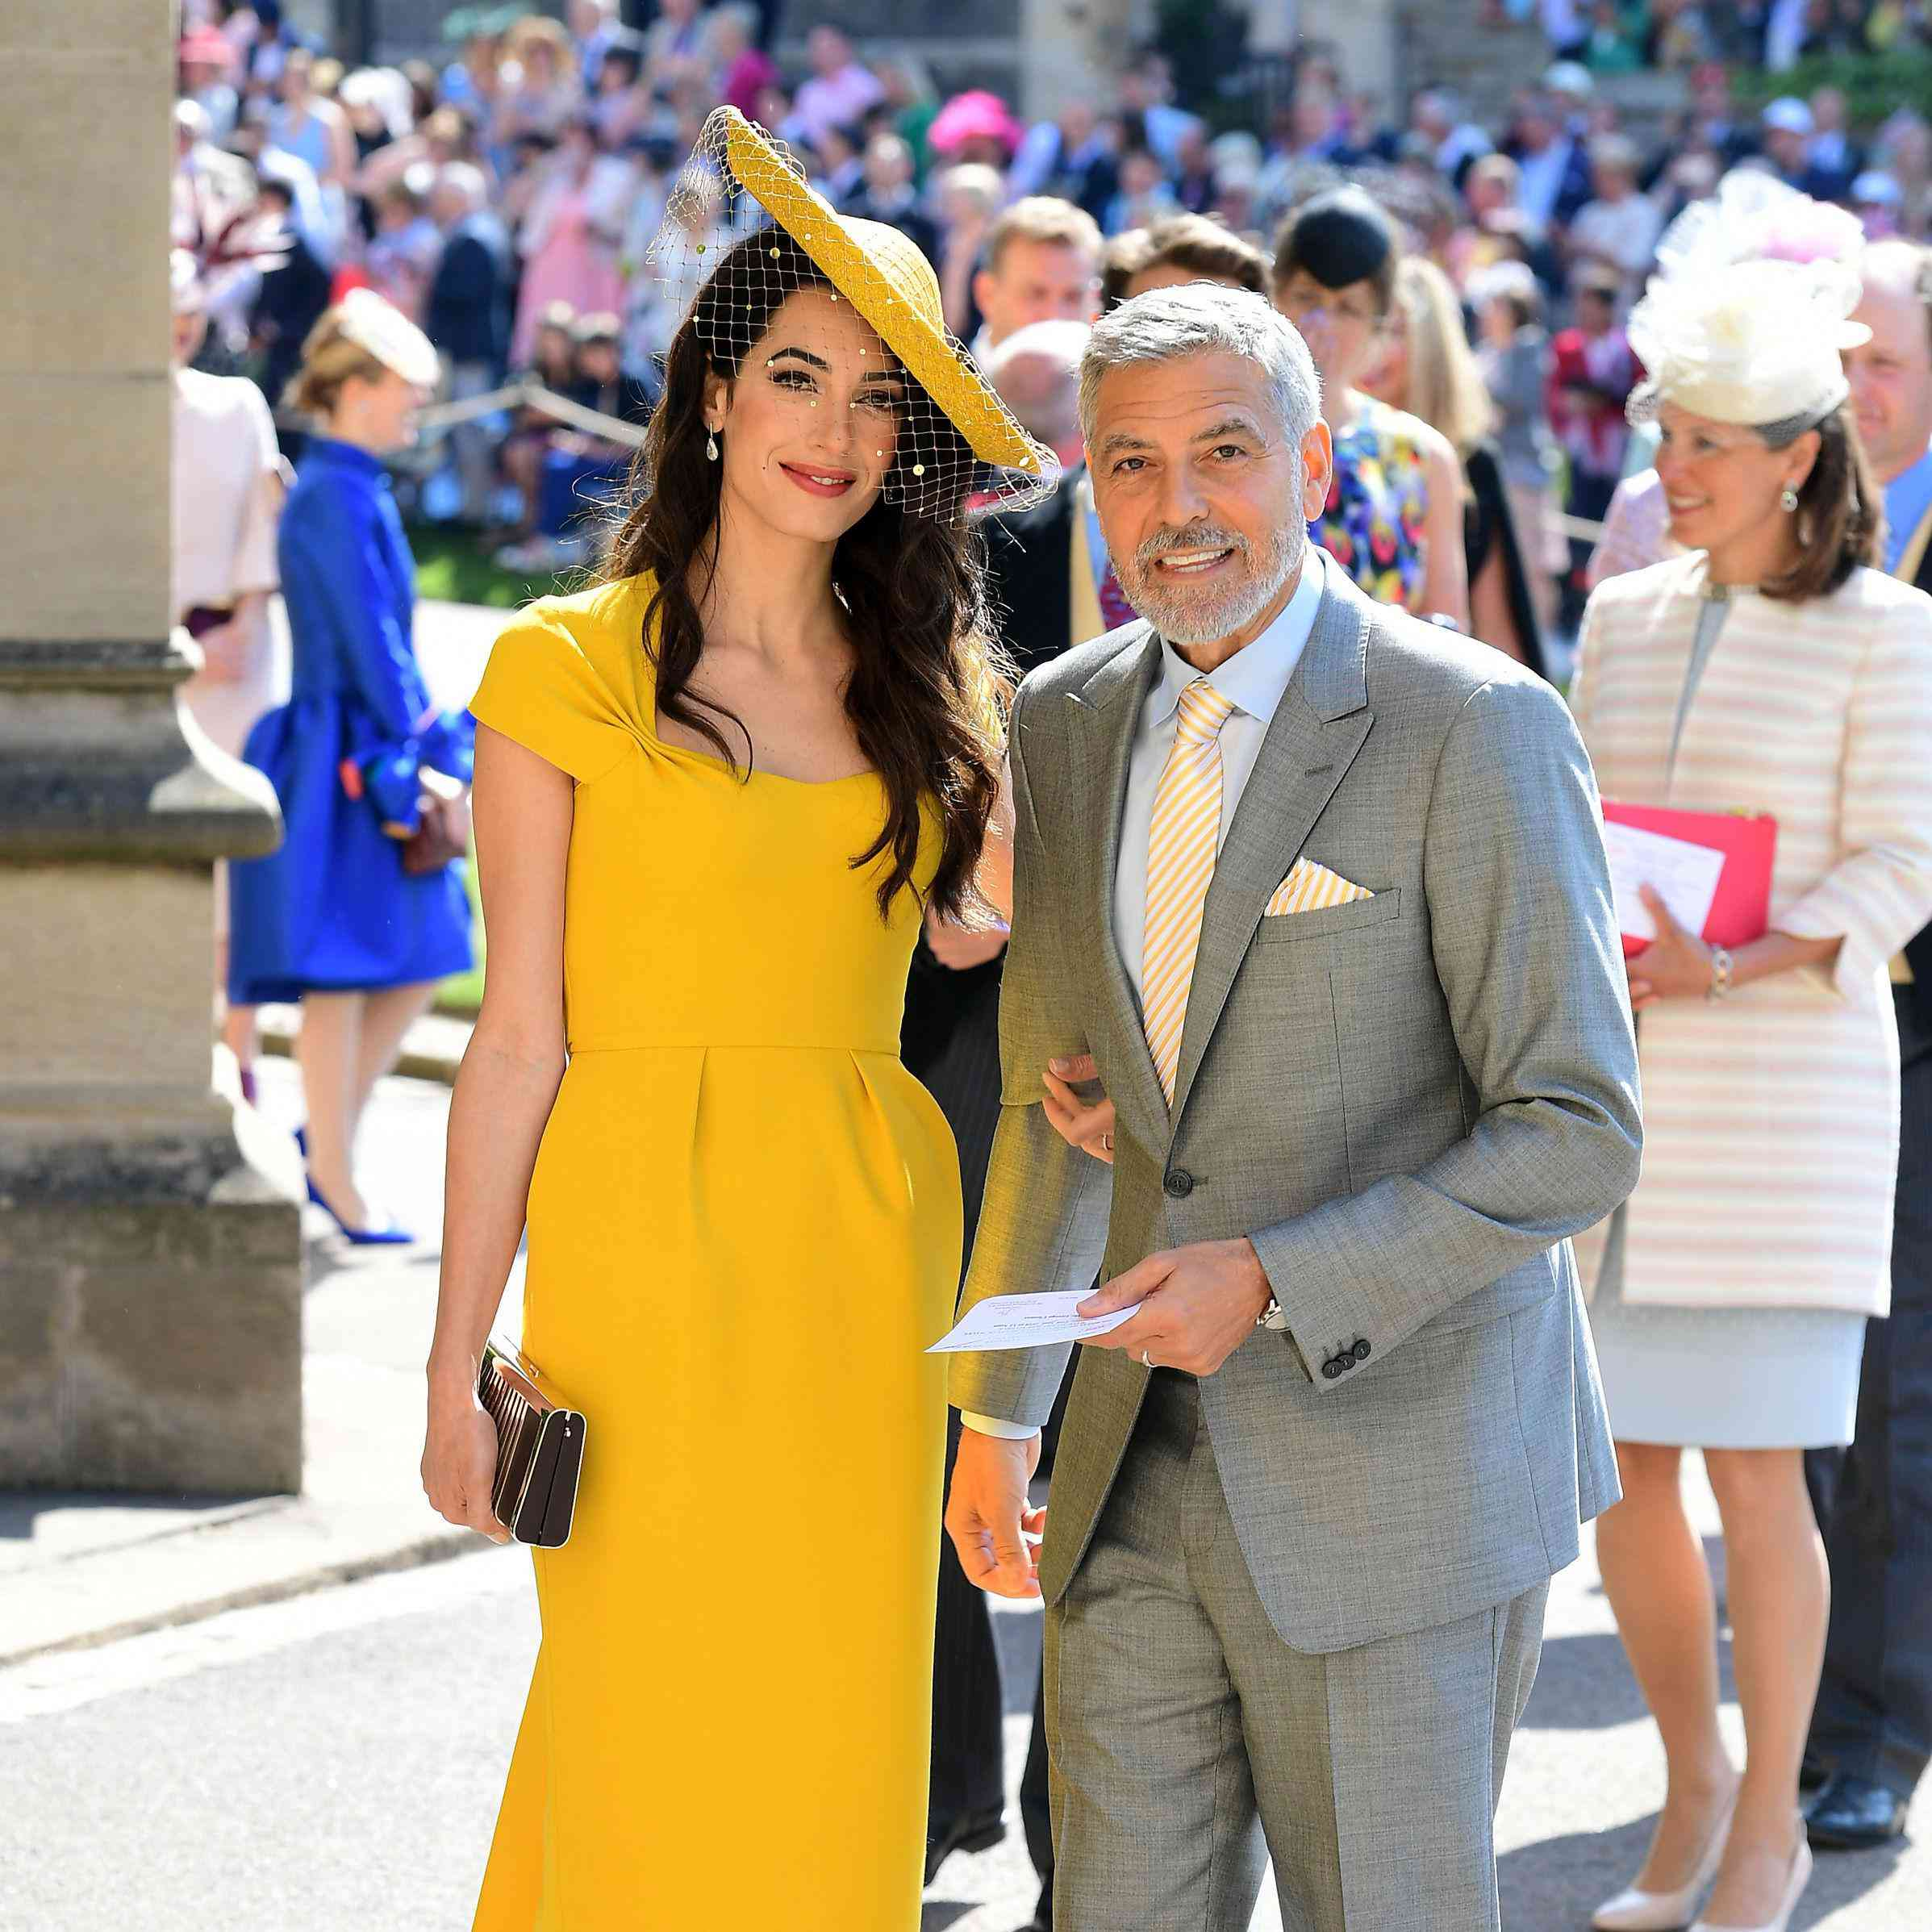 Amal Clooney Royal Wedding.You Can Finally Buy Amal Clooney S Unforgettable Yellow Dress From